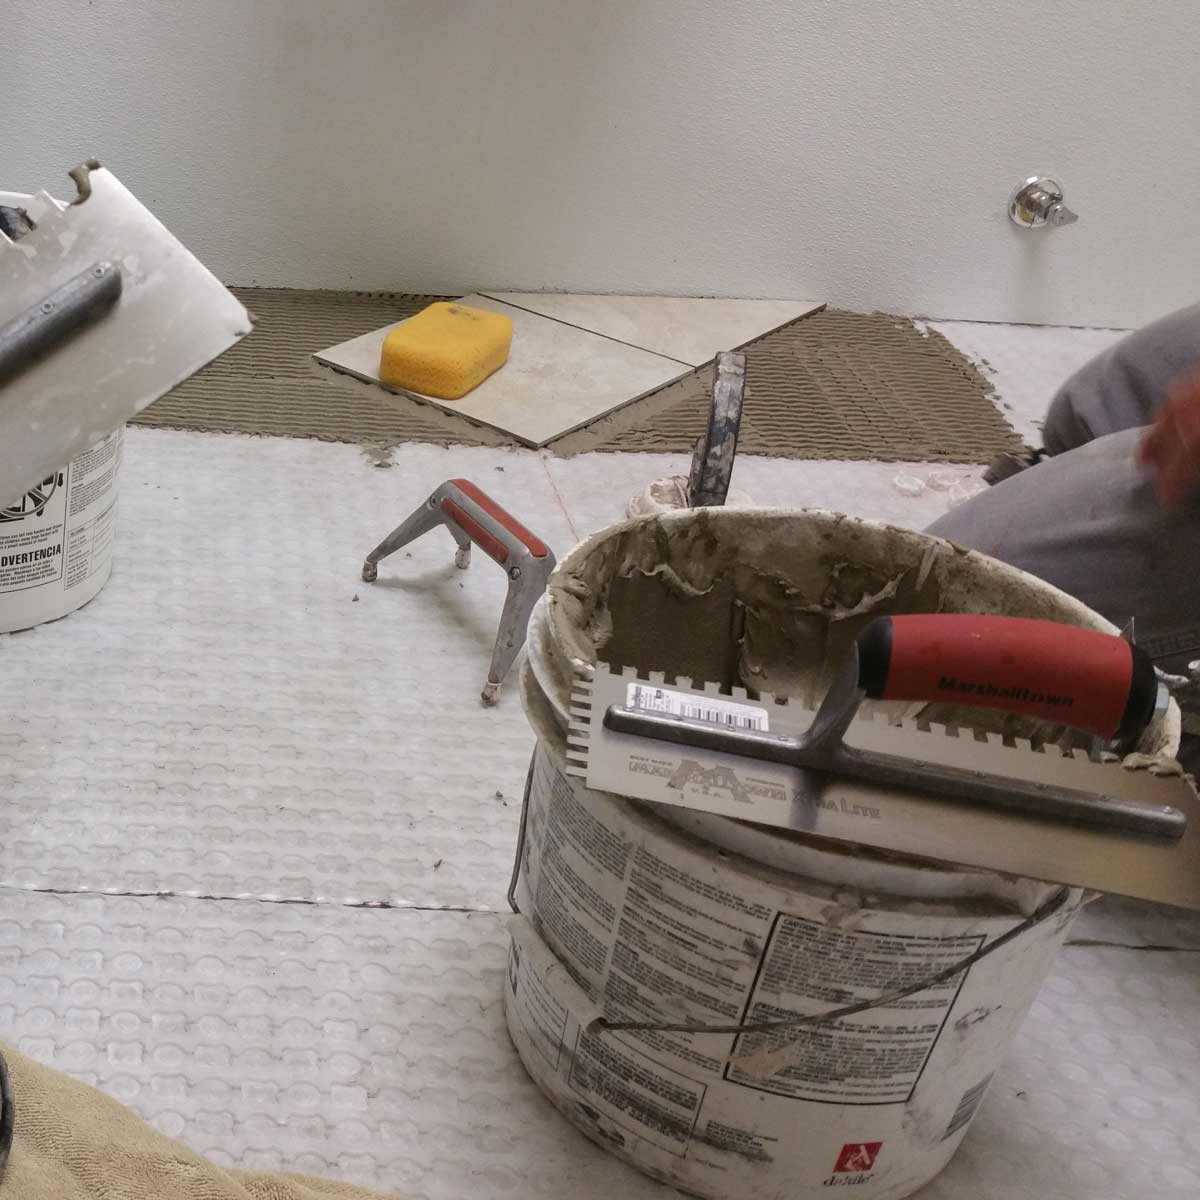 Shower Tile Installation with Marshalltown Trowels